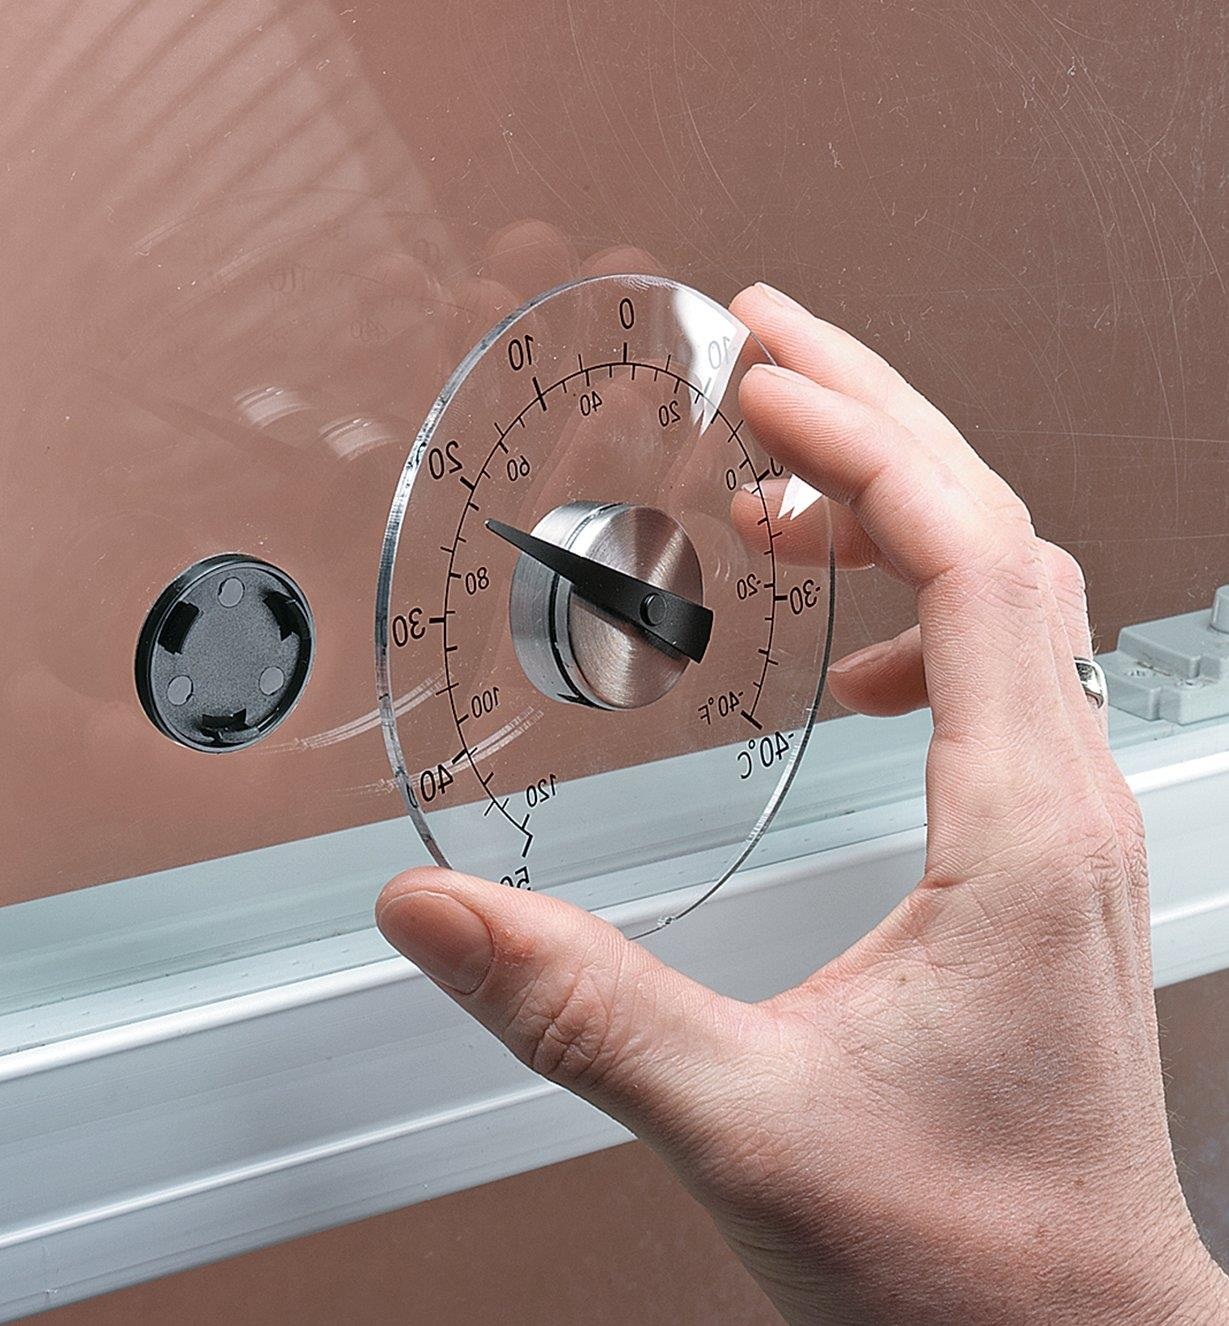 Mounting the Window-Mount Thermometer on the adhesive central hub attached to a windowpane